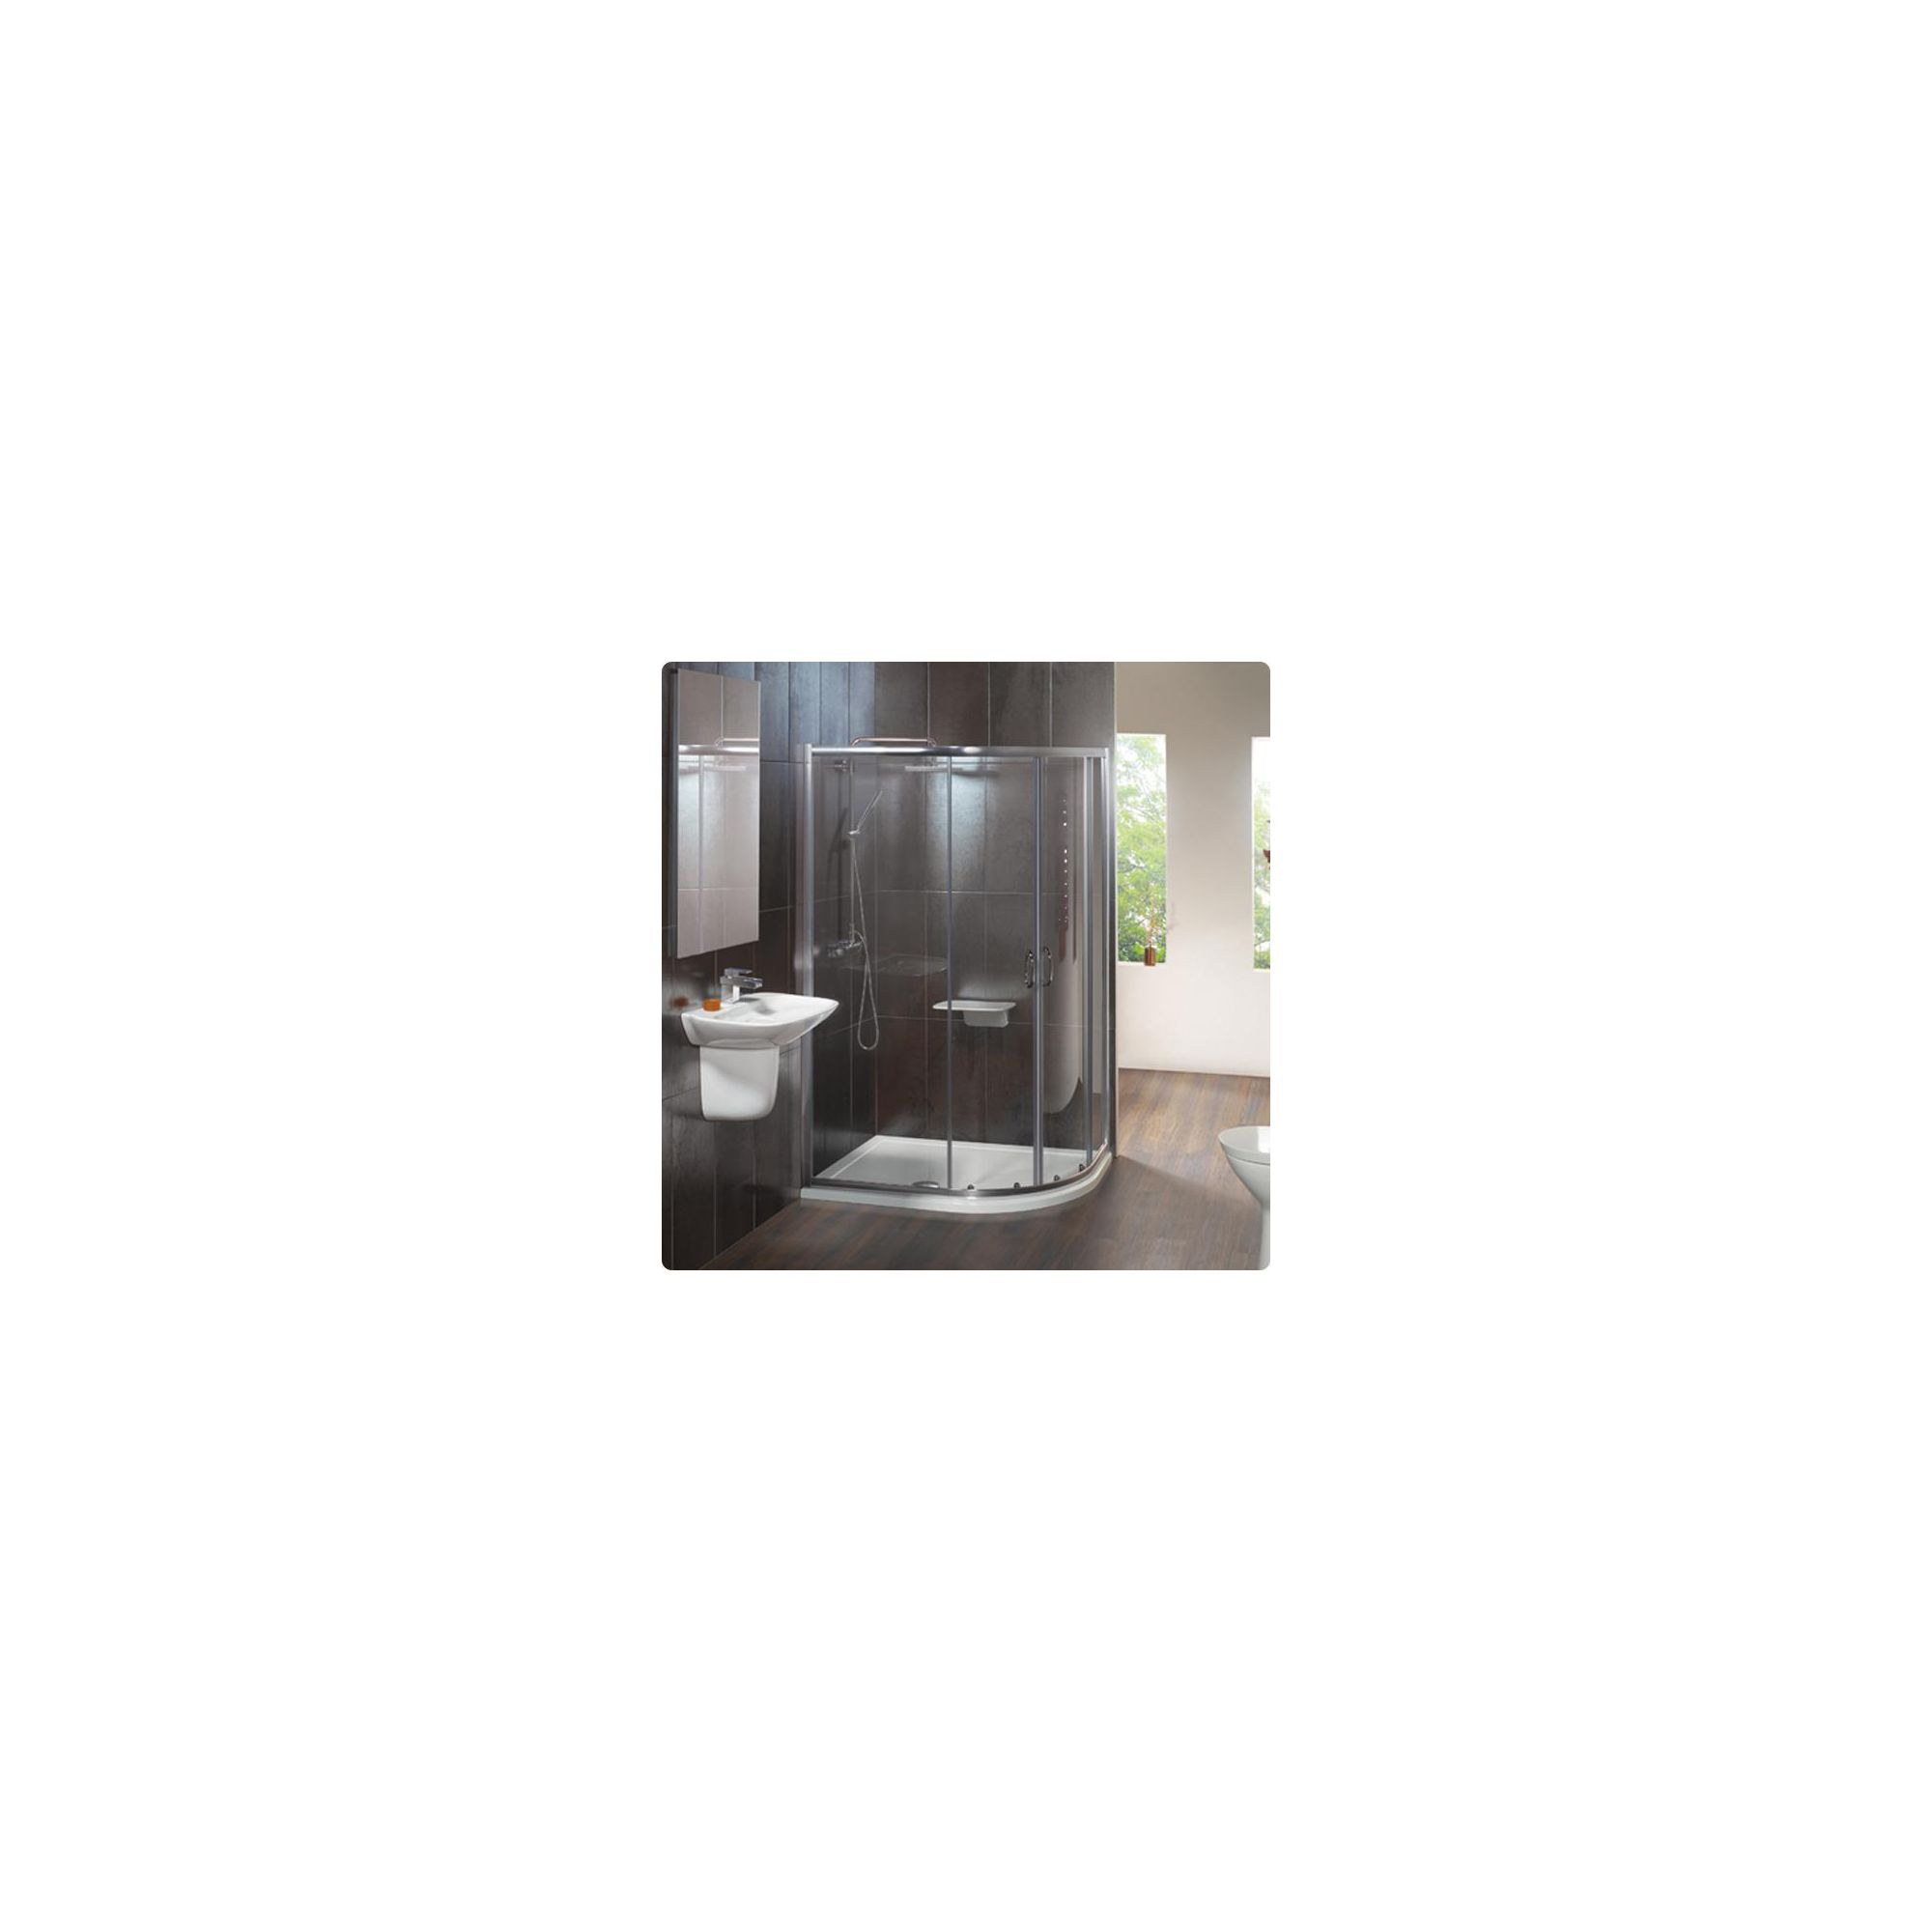 Balterley Offset Quadrant Double Shower Door, 1200mm x 800mm, 6mm Glass at Tesco Direct